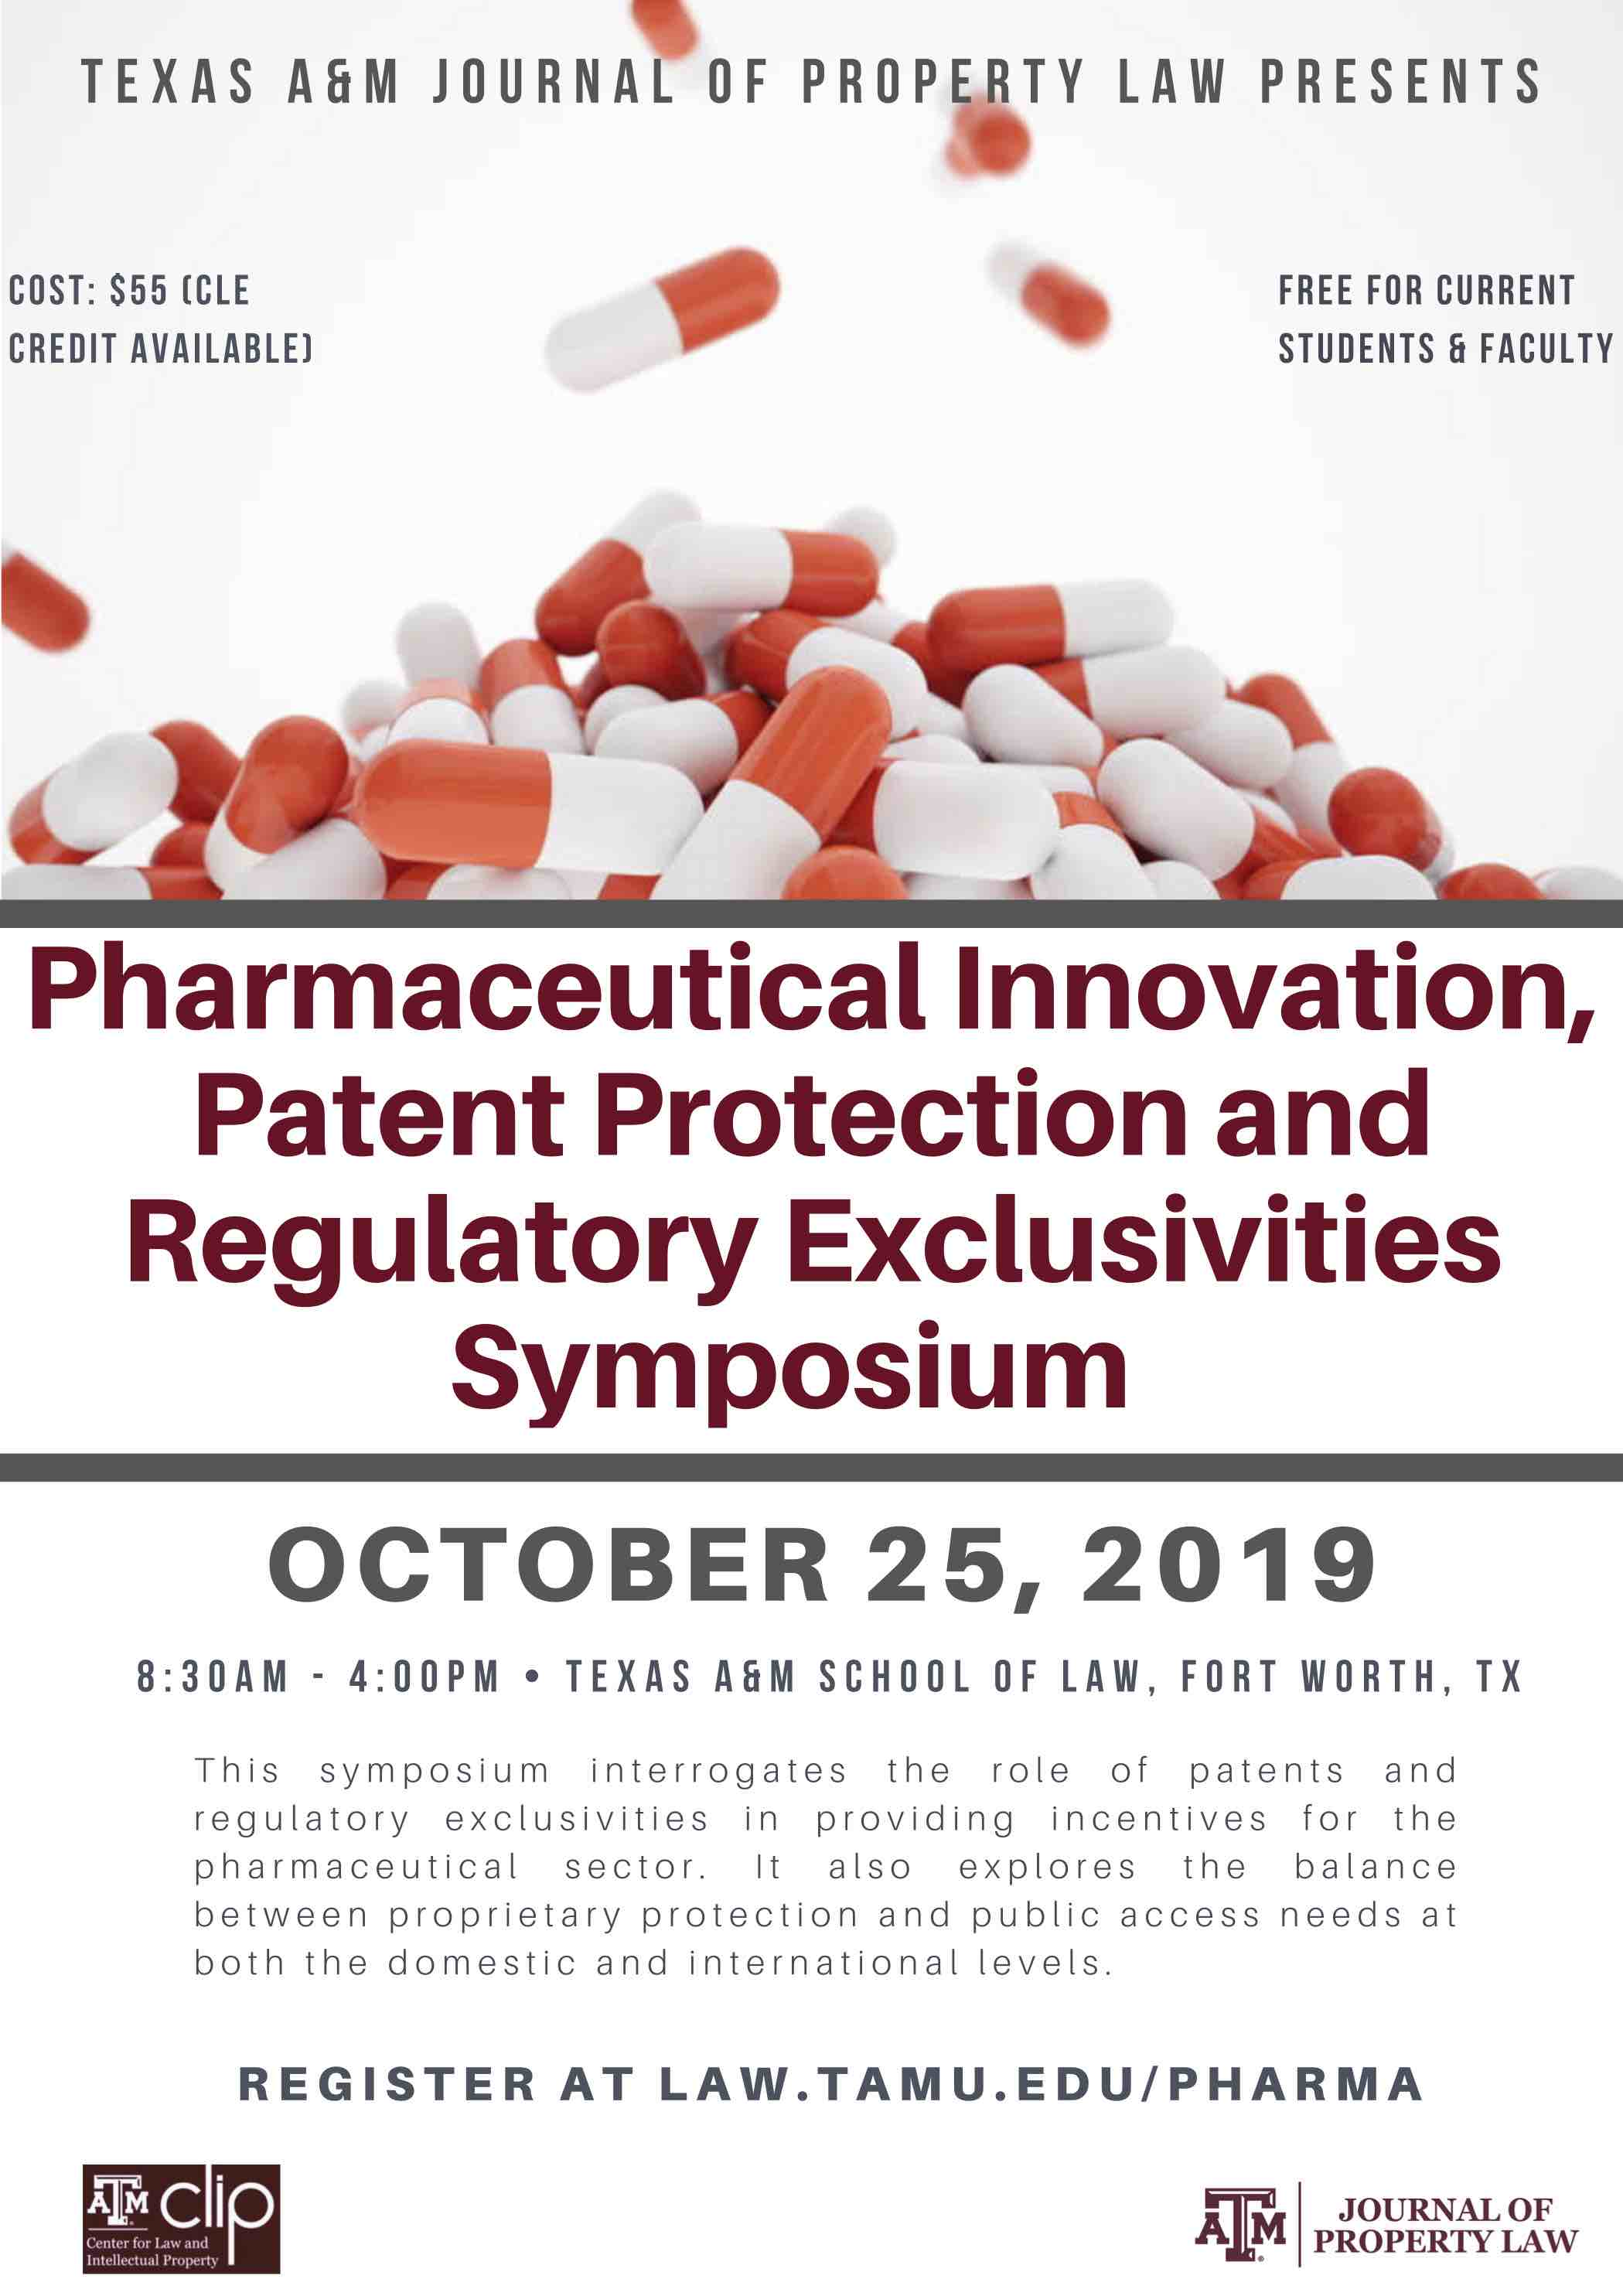 Pharmaceutical Innovation, Patent Protection and Regulatory Exclusivities Symposium